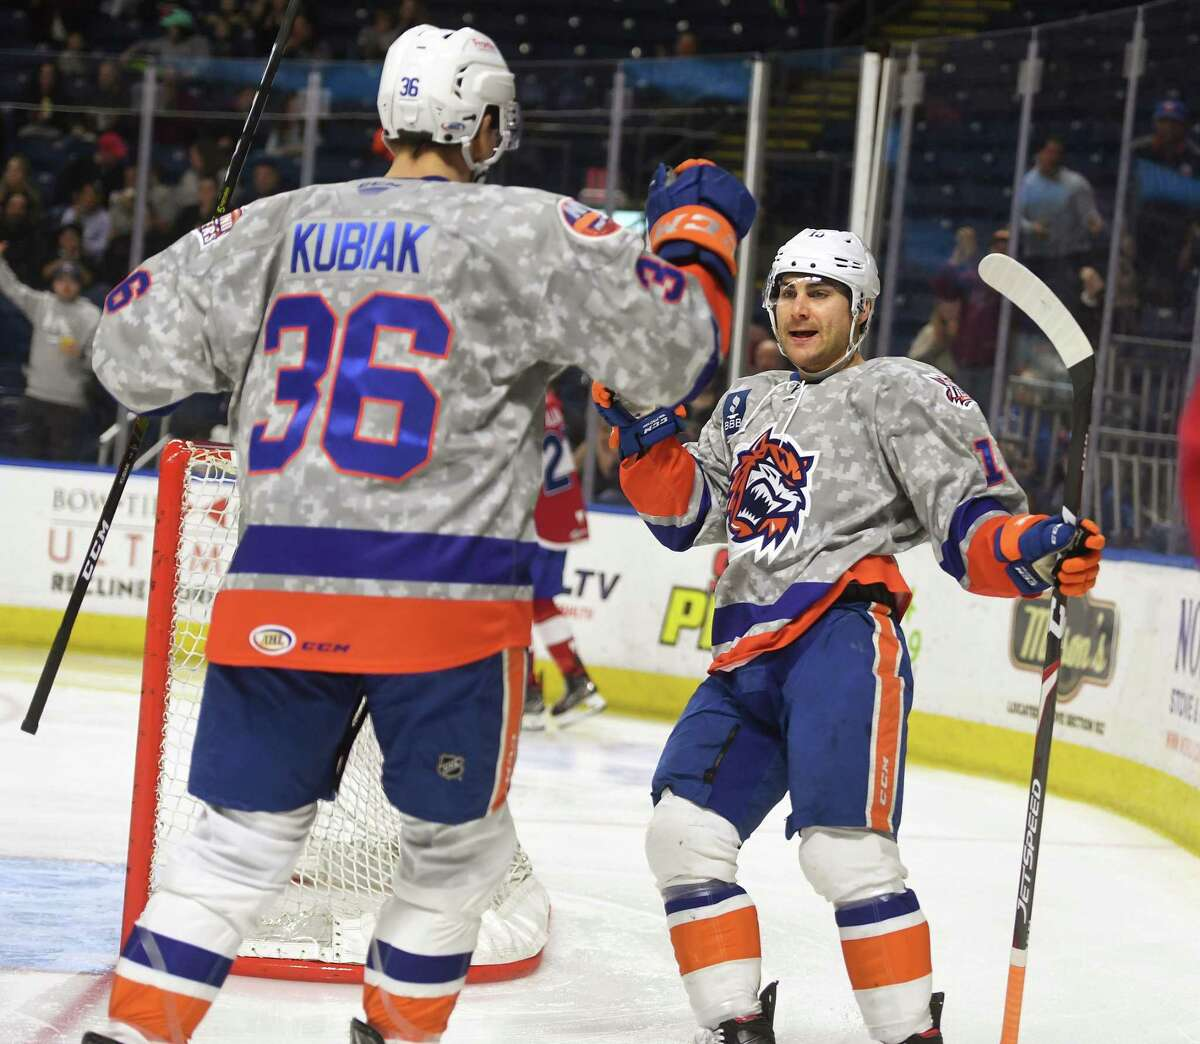 Bridgeport Sound Tigers Jeff Kubiak, left, and Ryan Bourque celebrate Bourque's first period goal during their AHL hockey game with the Laval Rocket at the Webster Bank Arena in Bridgeport, Conn. on Sunday, January 12, 2020.